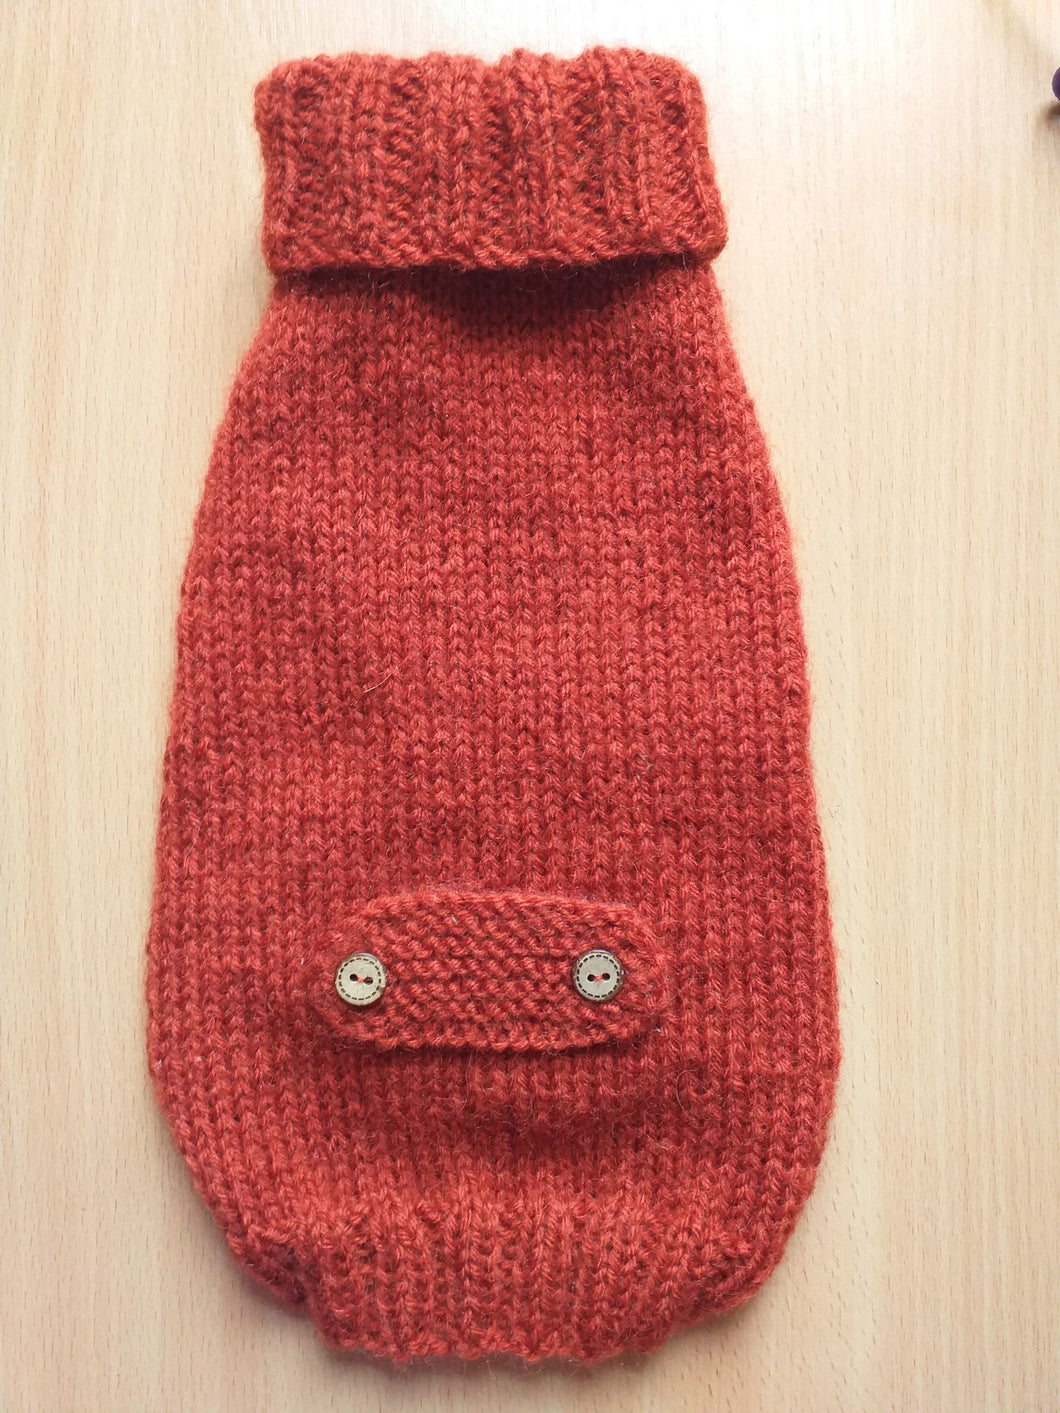 Clothes sweater for small dogs or dachshund puppy, knitted warm wool jumper for small dachshund